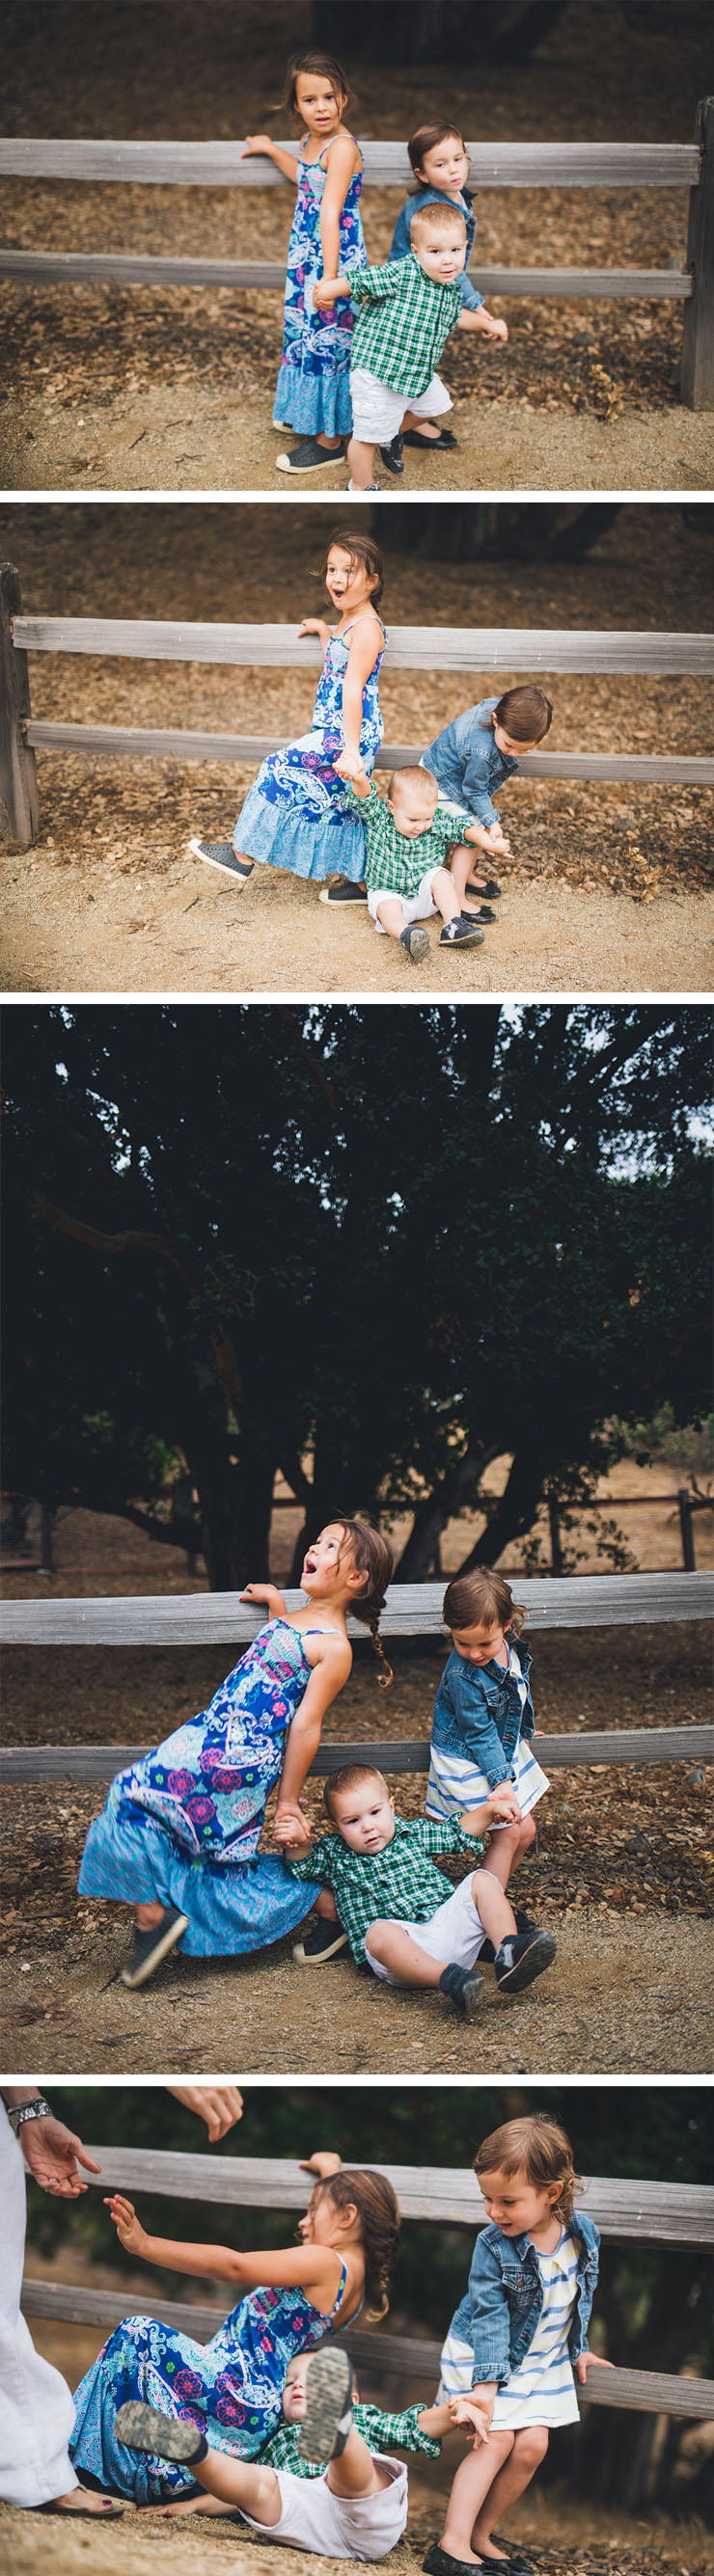 PAPPAS-FAMILY-PORTRAITS-PACIFIC-PALISADES-0049